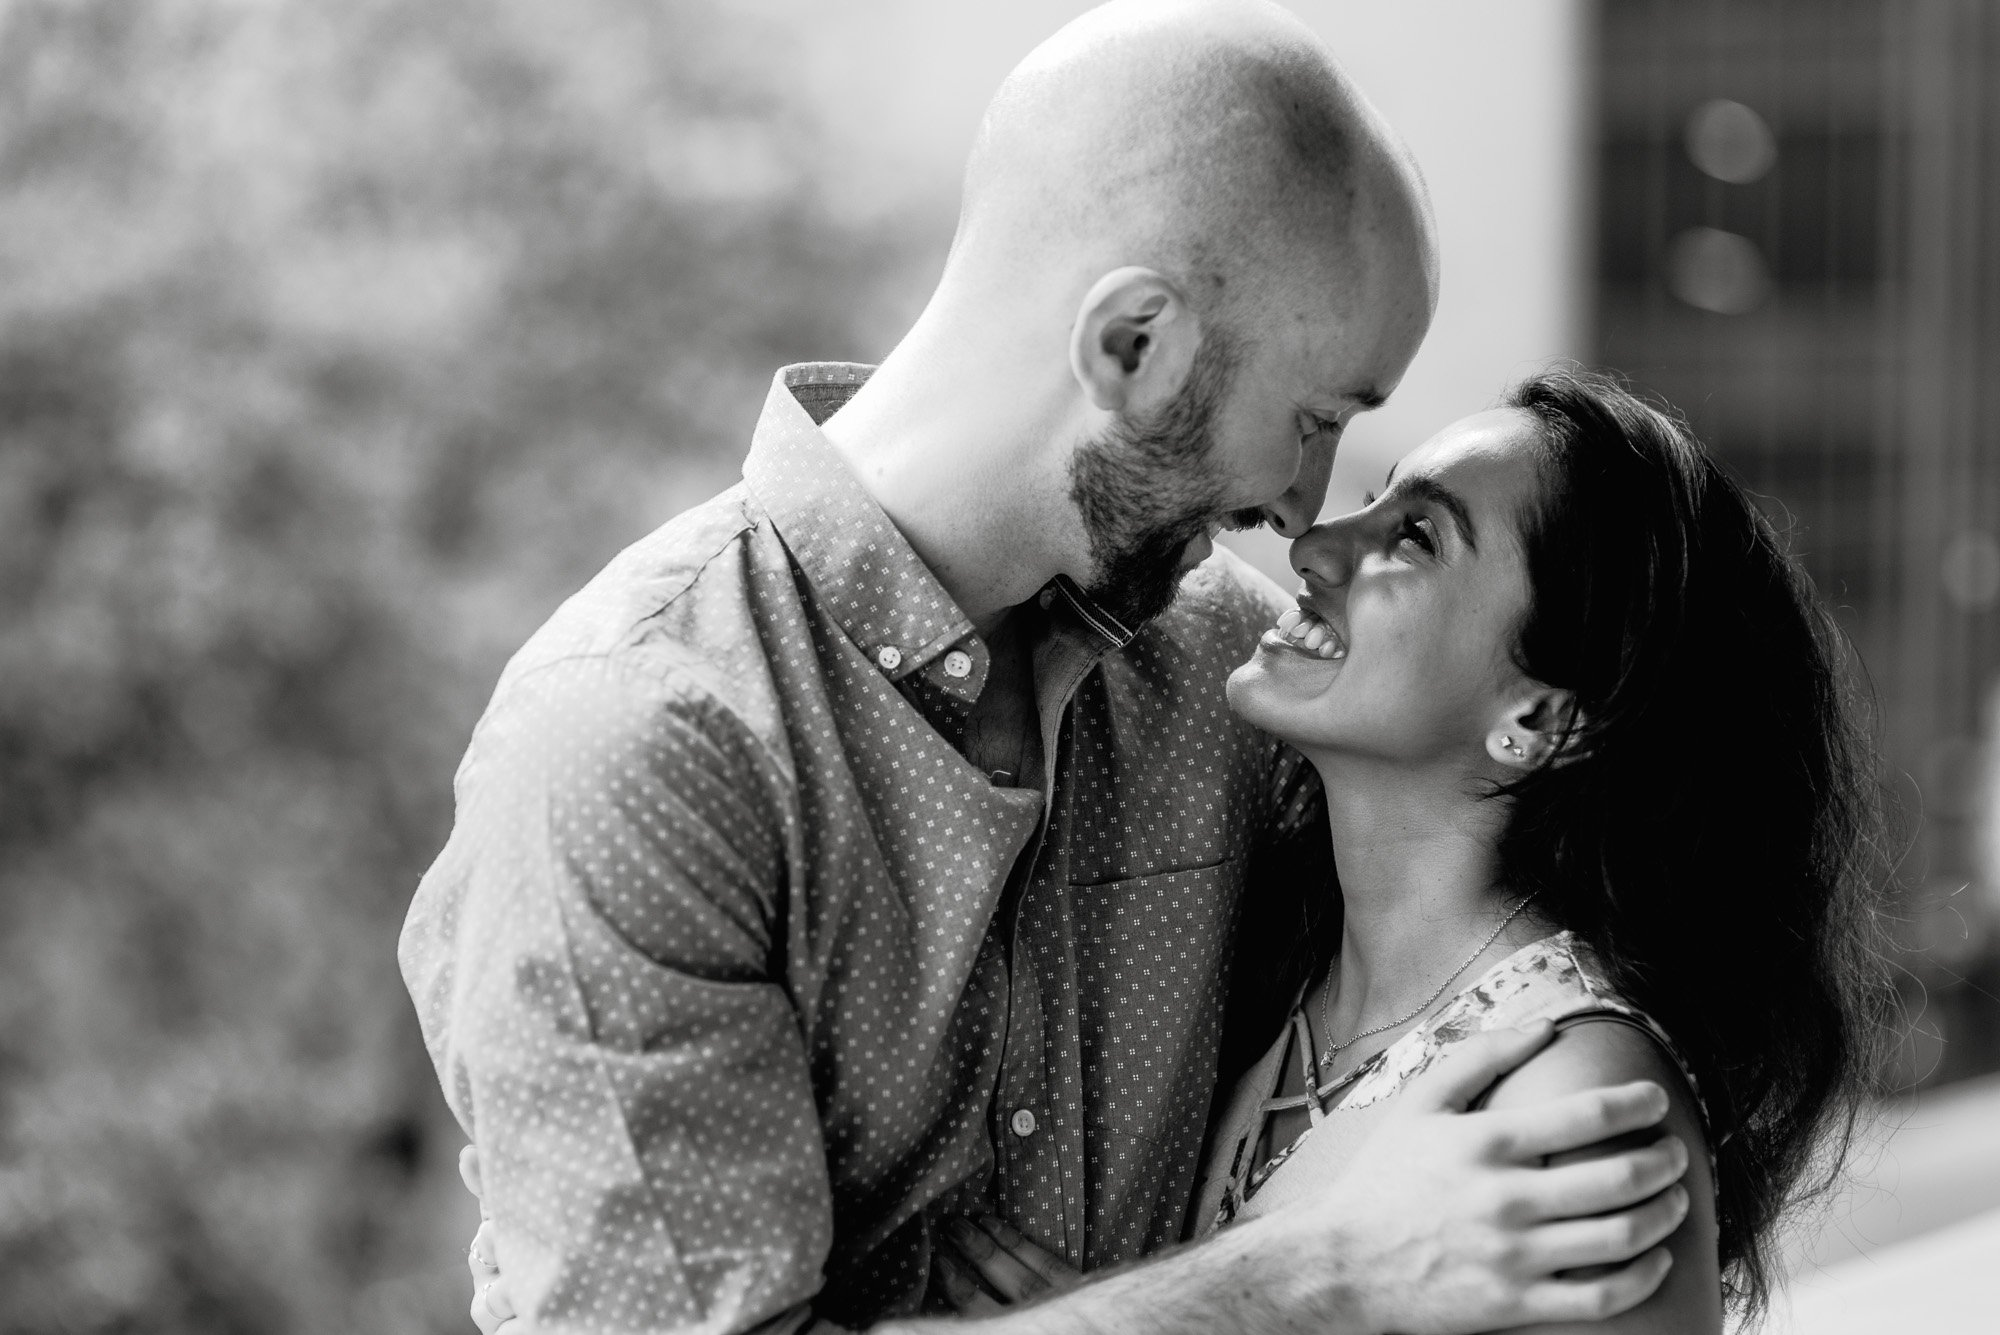 candid black and white engagement photography in austin, austin surprise proposal photographer